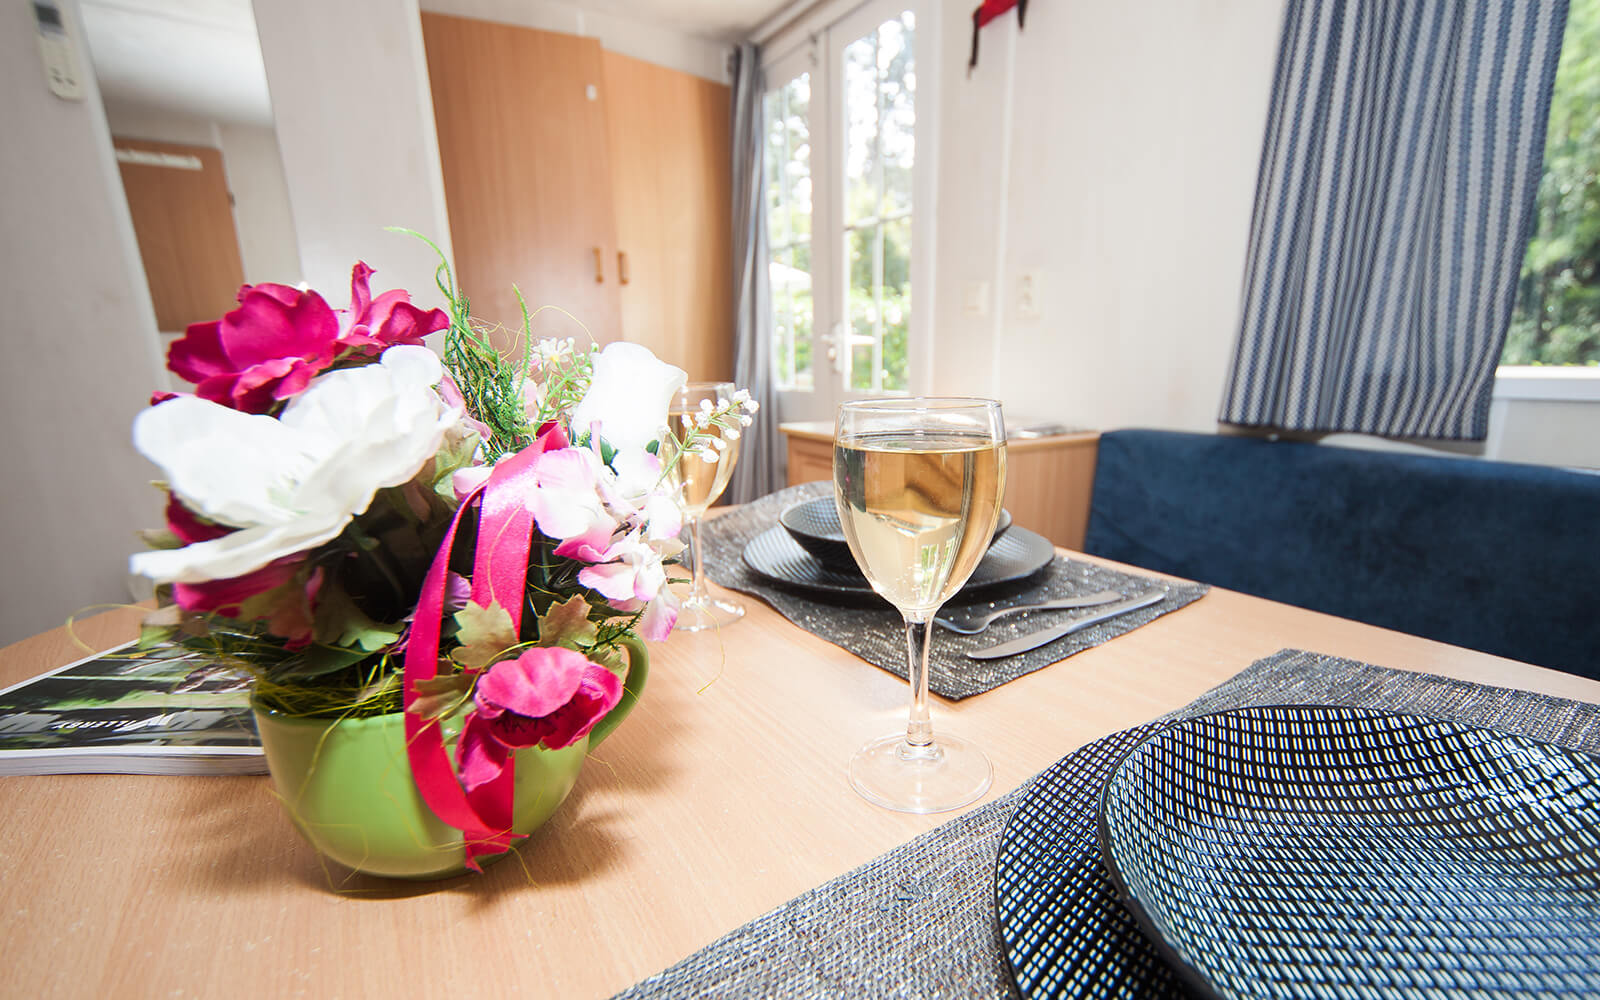 Wine glass on table next to flowers